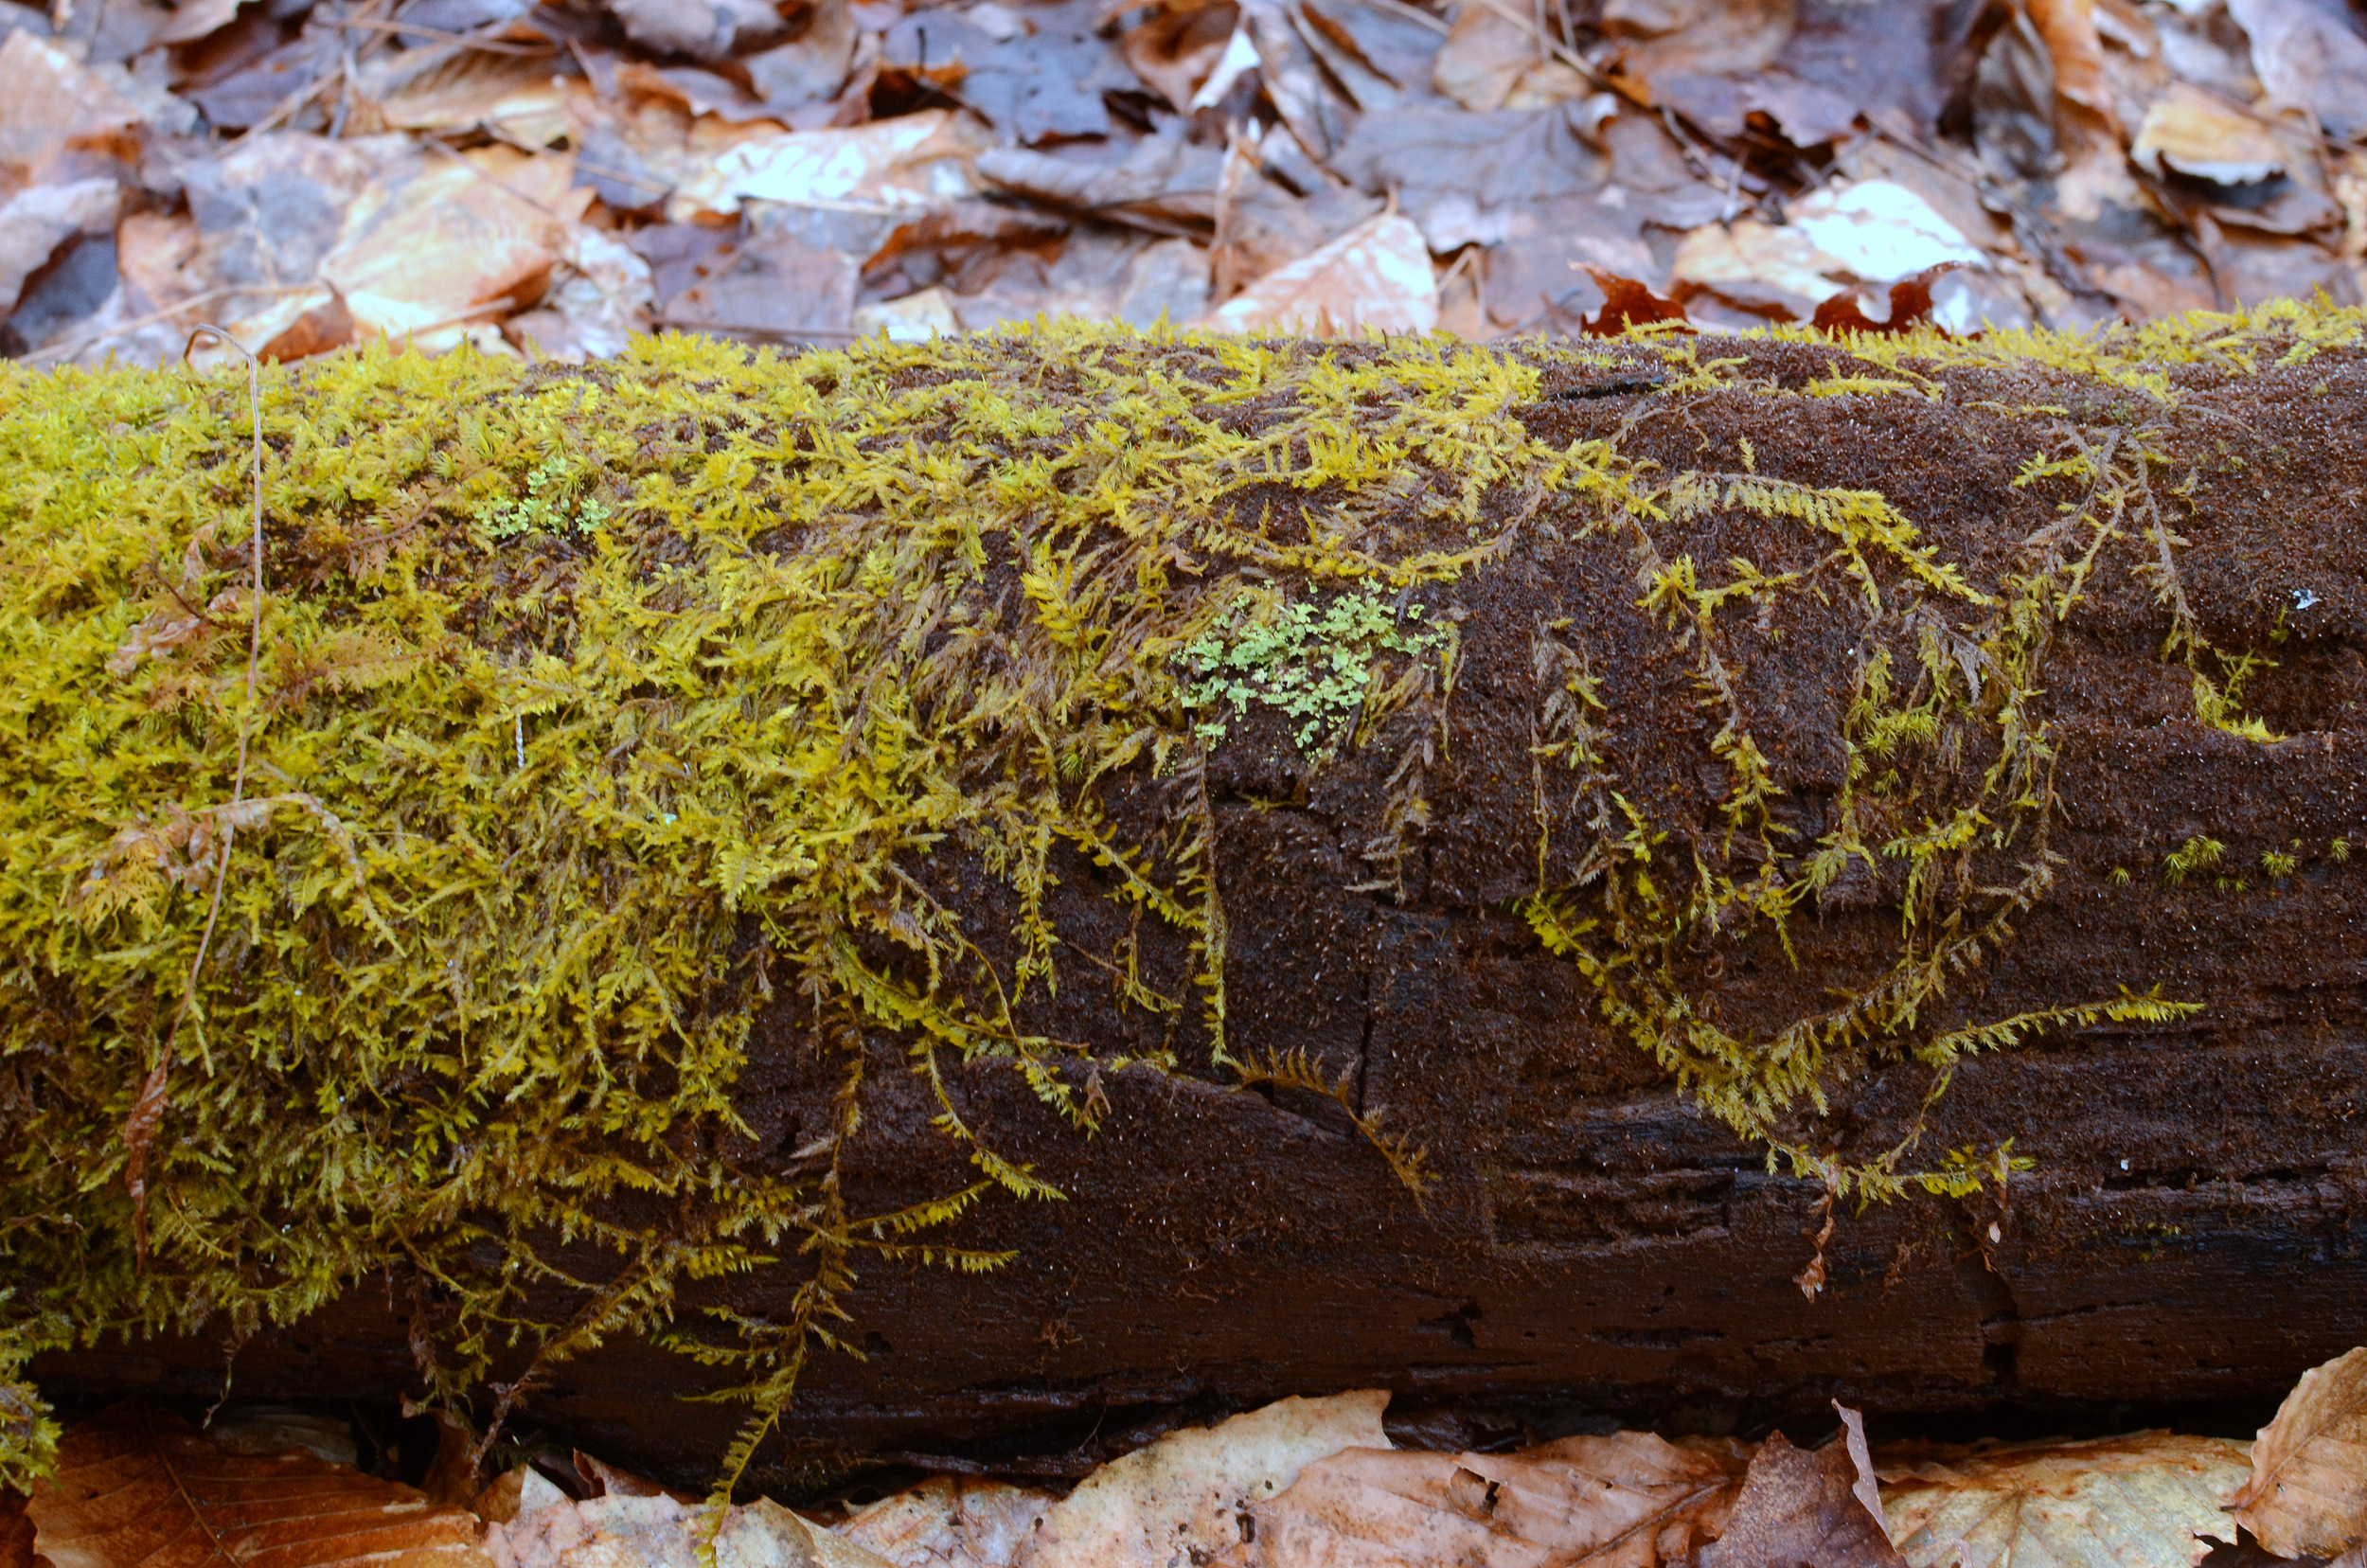 Moss on log - Christina Rosalie